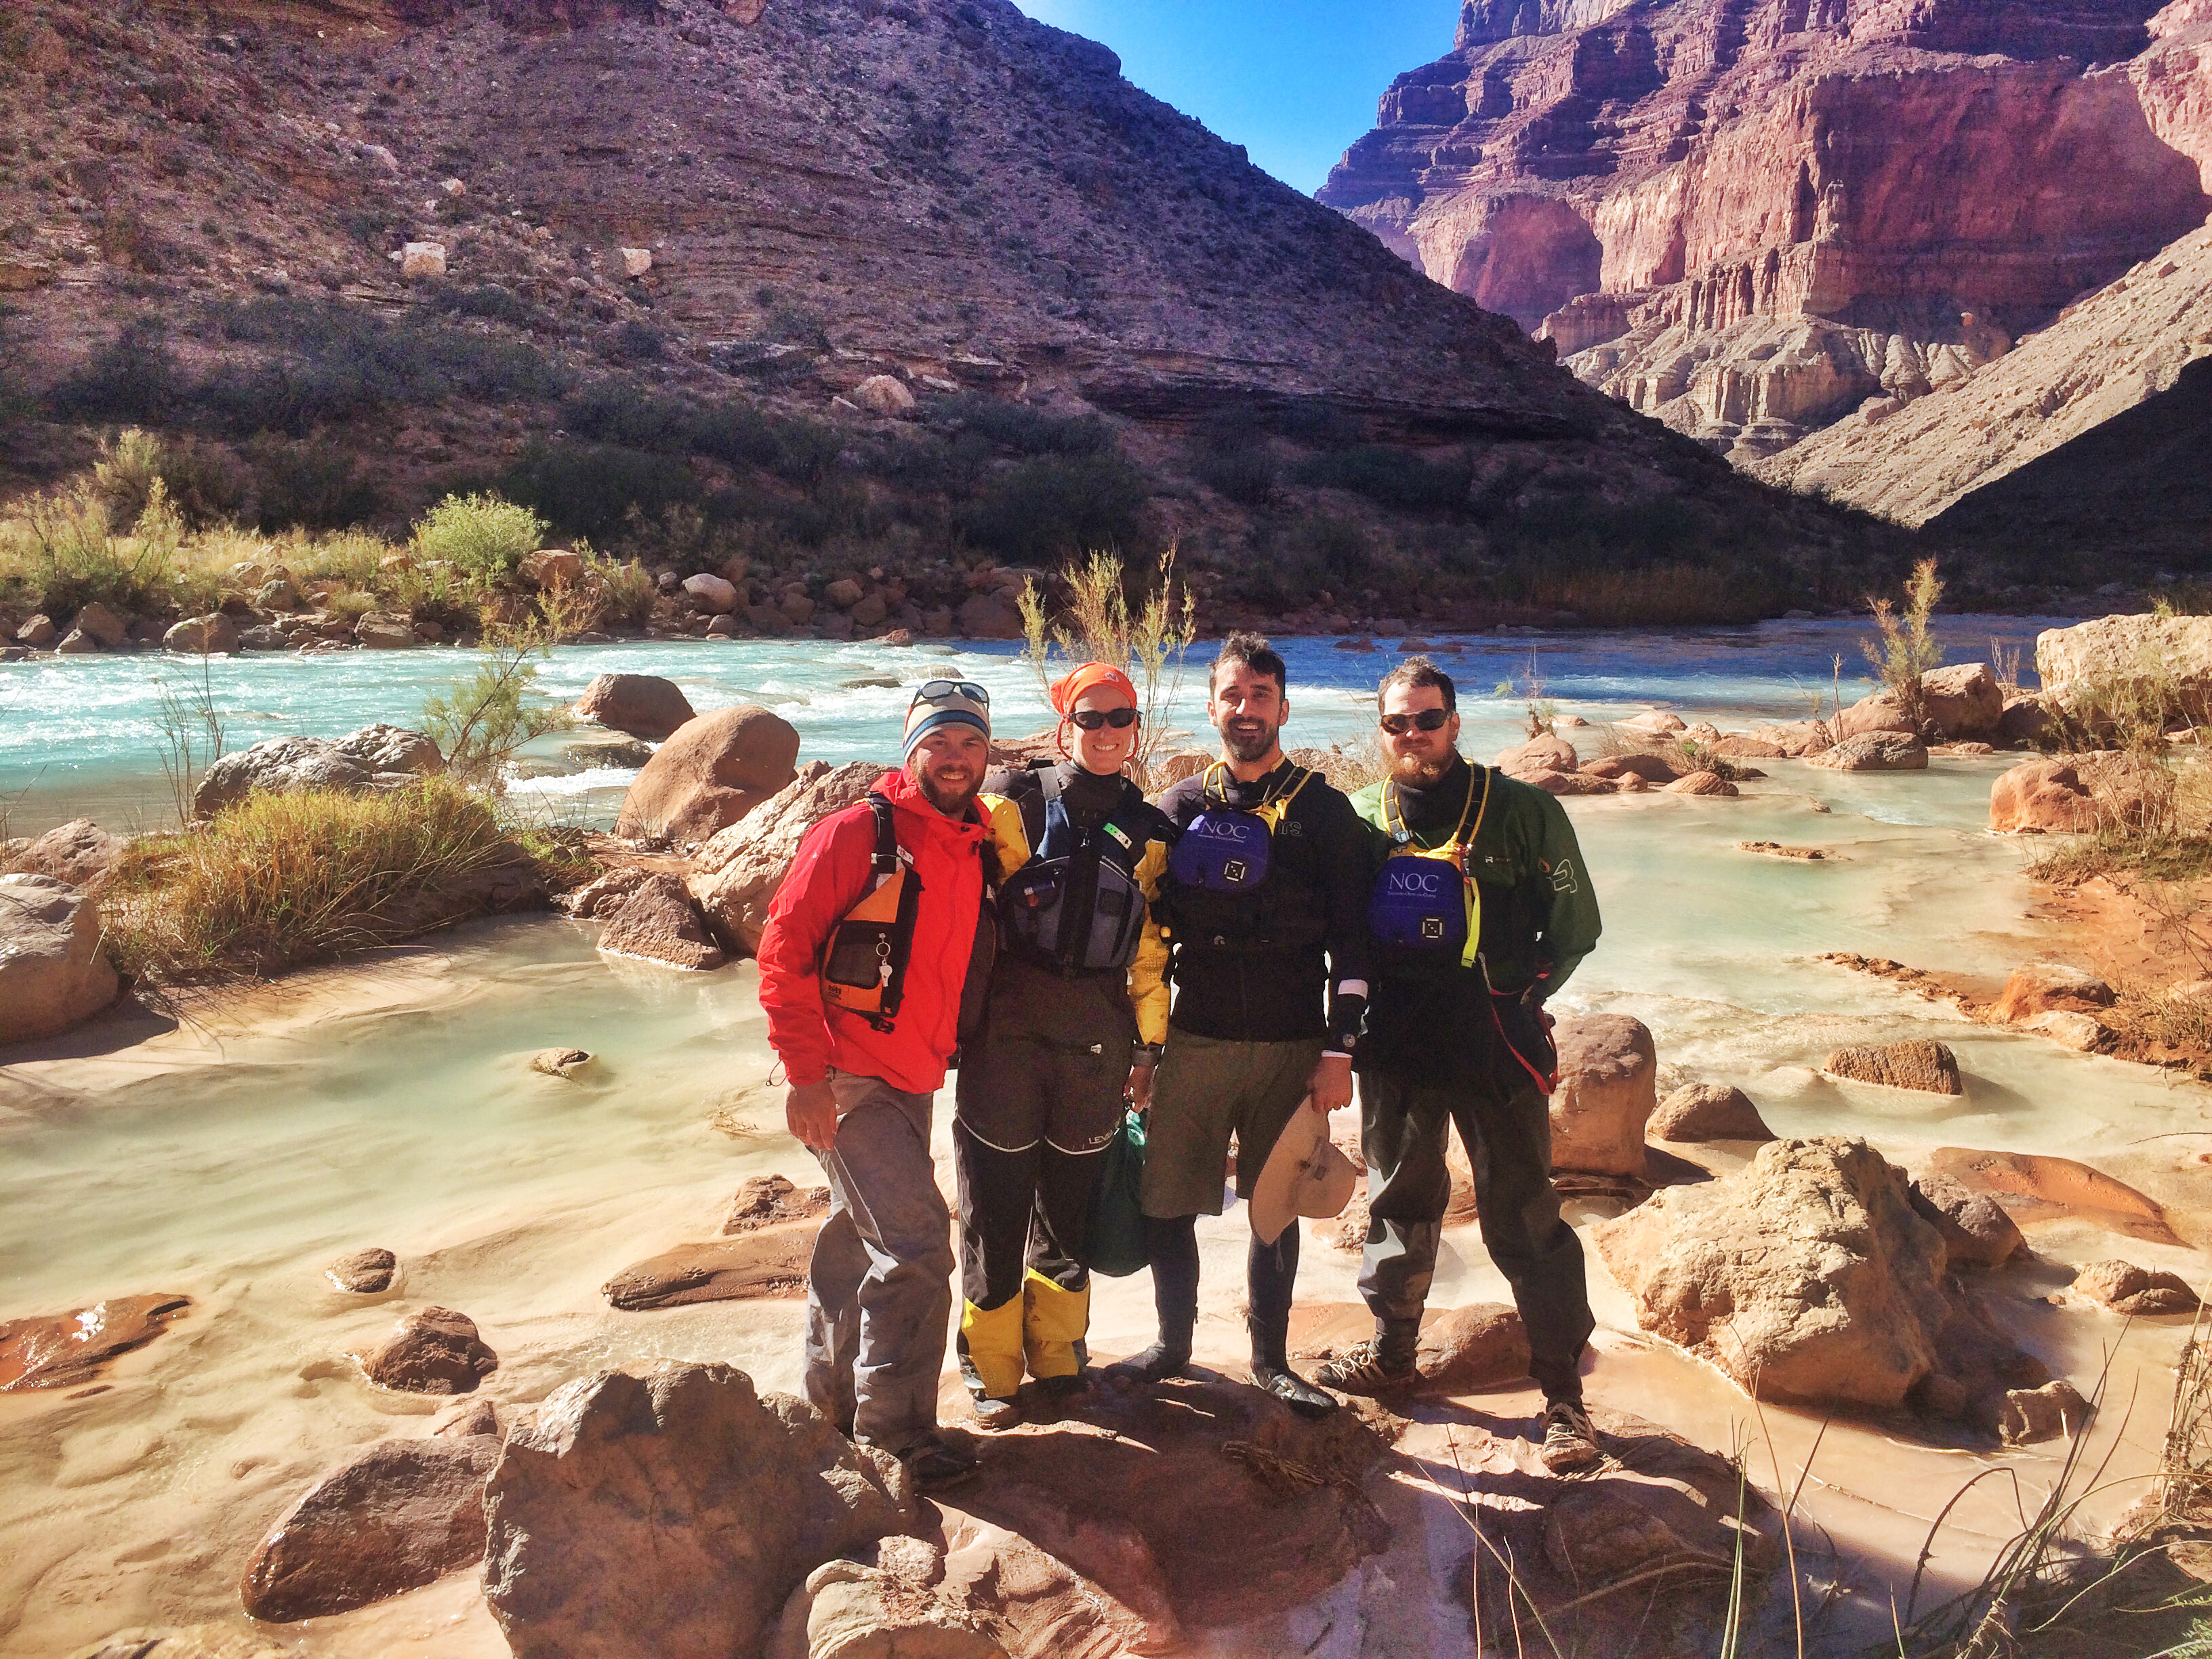 NOC Guides take a break during the LCR hike in the Grand Canyon.